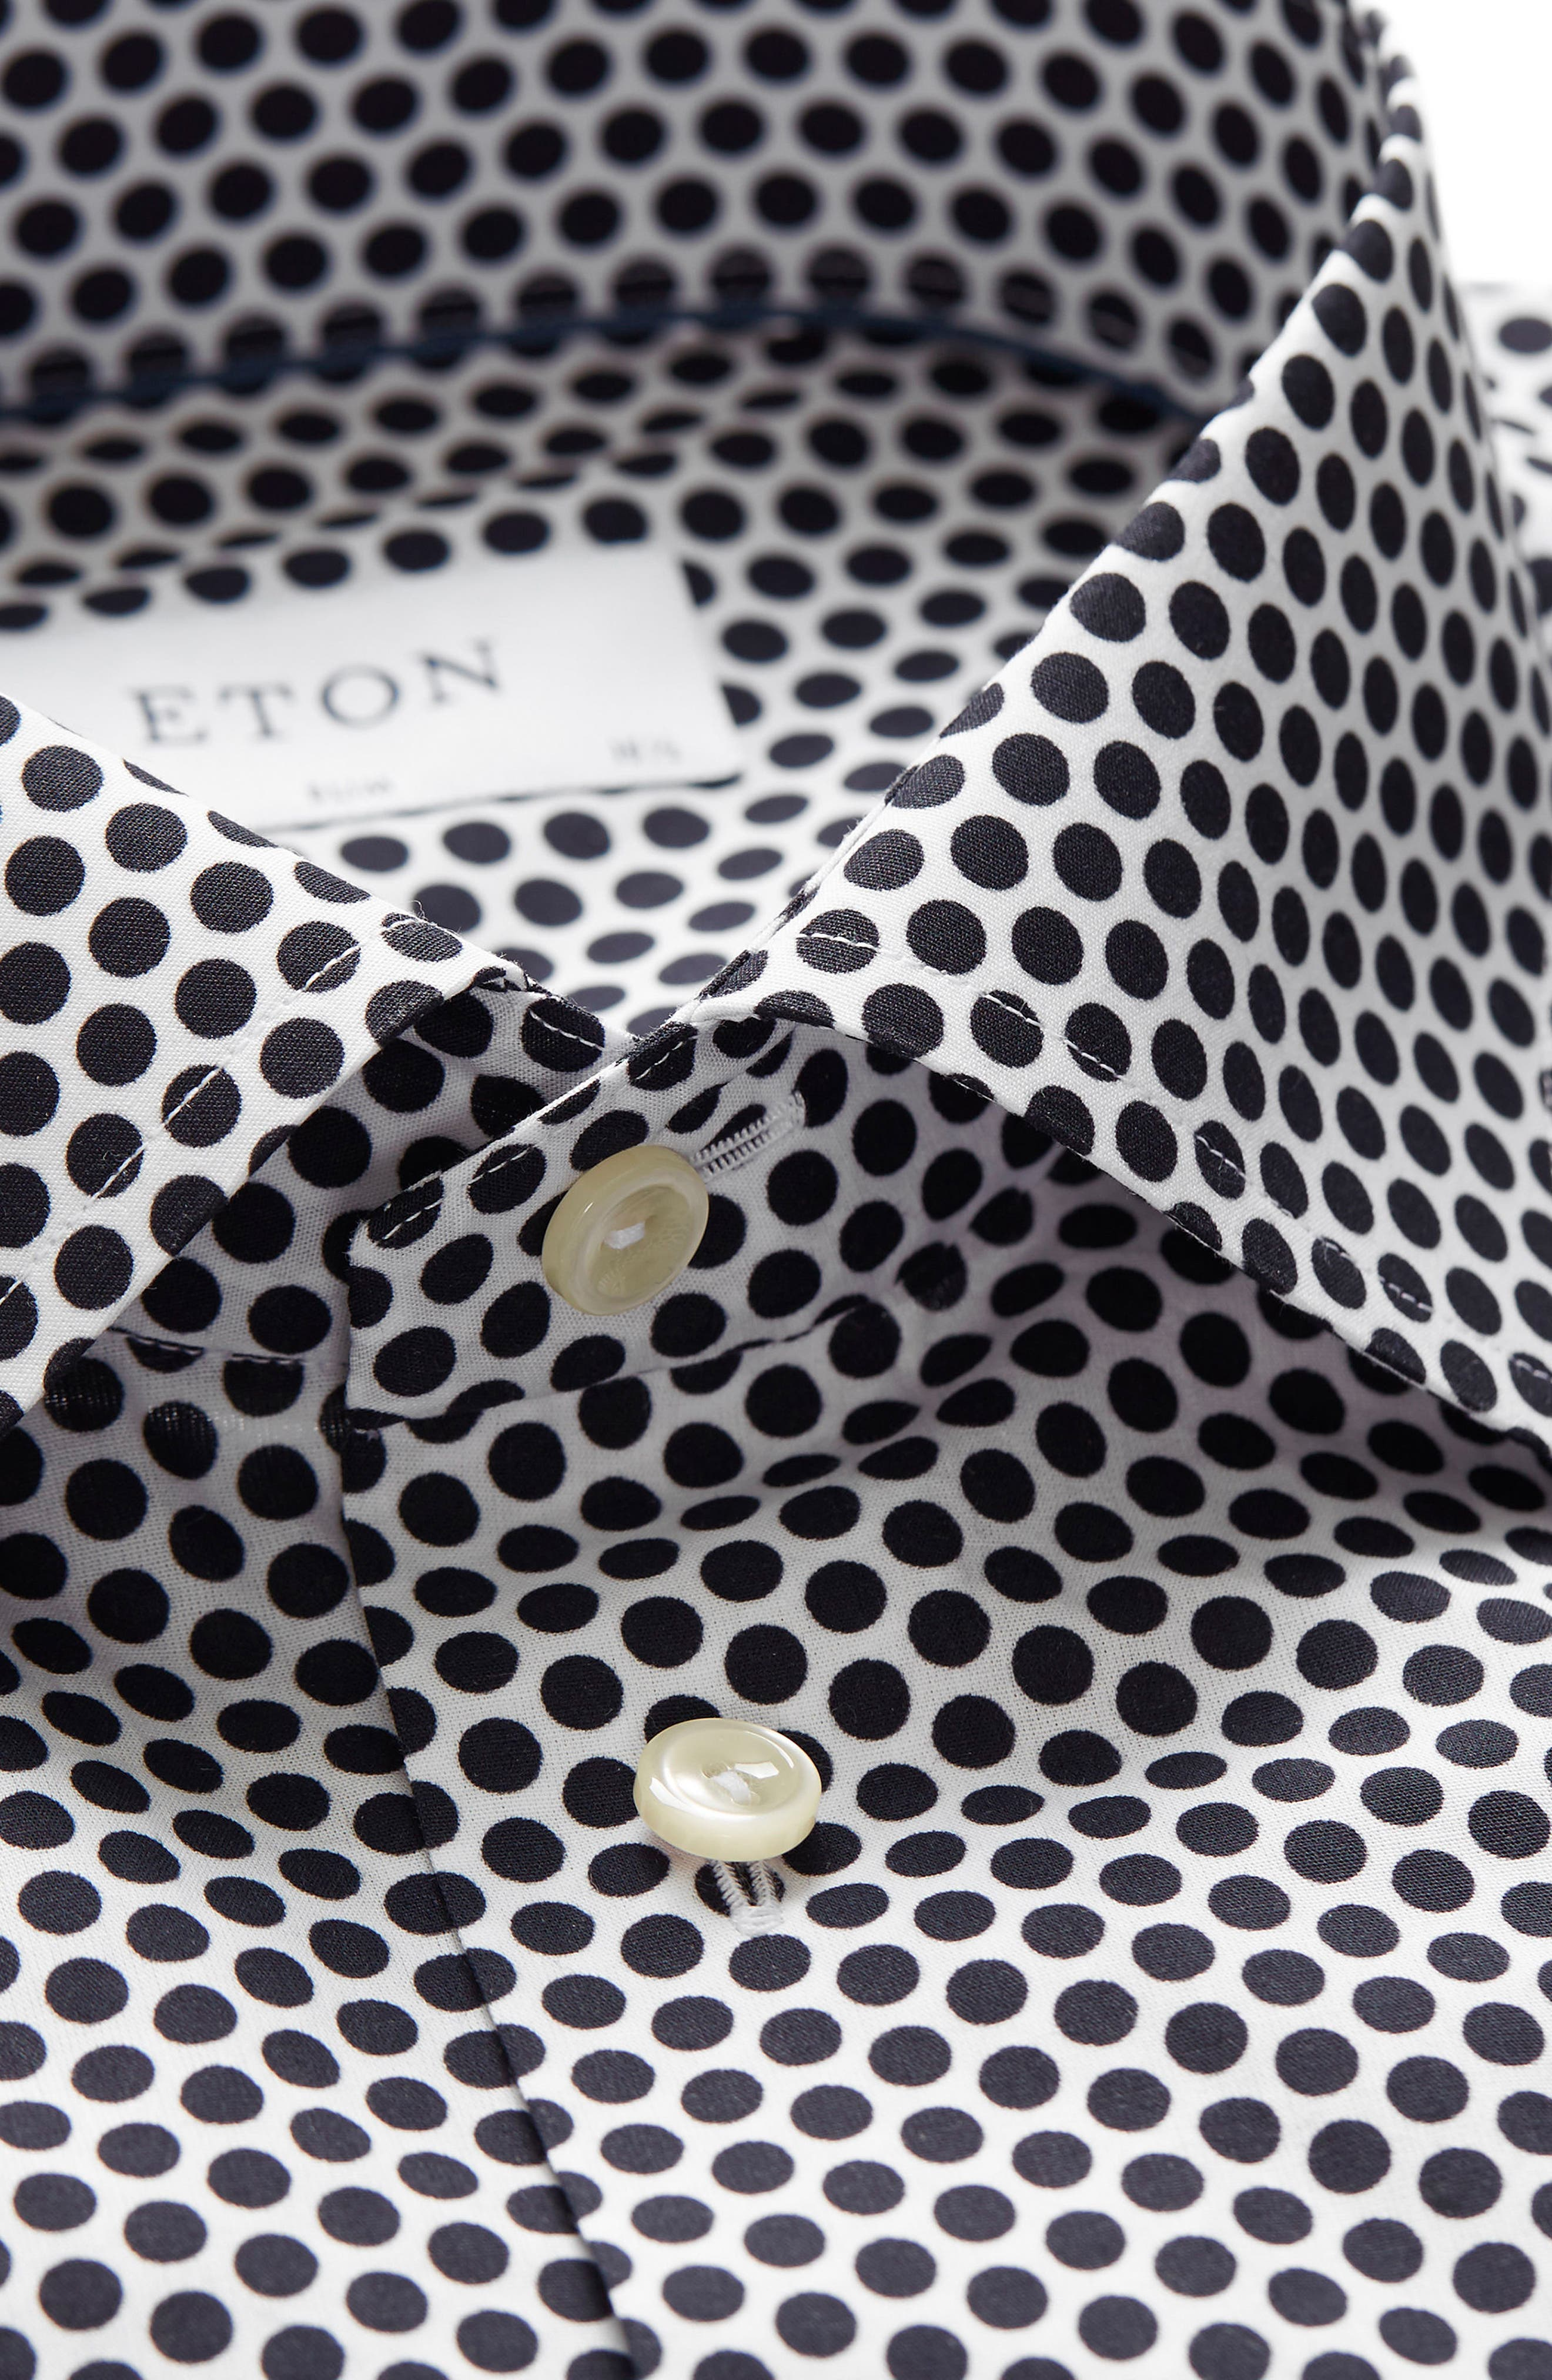 Slim Fit Dot Dress Shirt,                             Alternate thumbnail 3, color,                             001